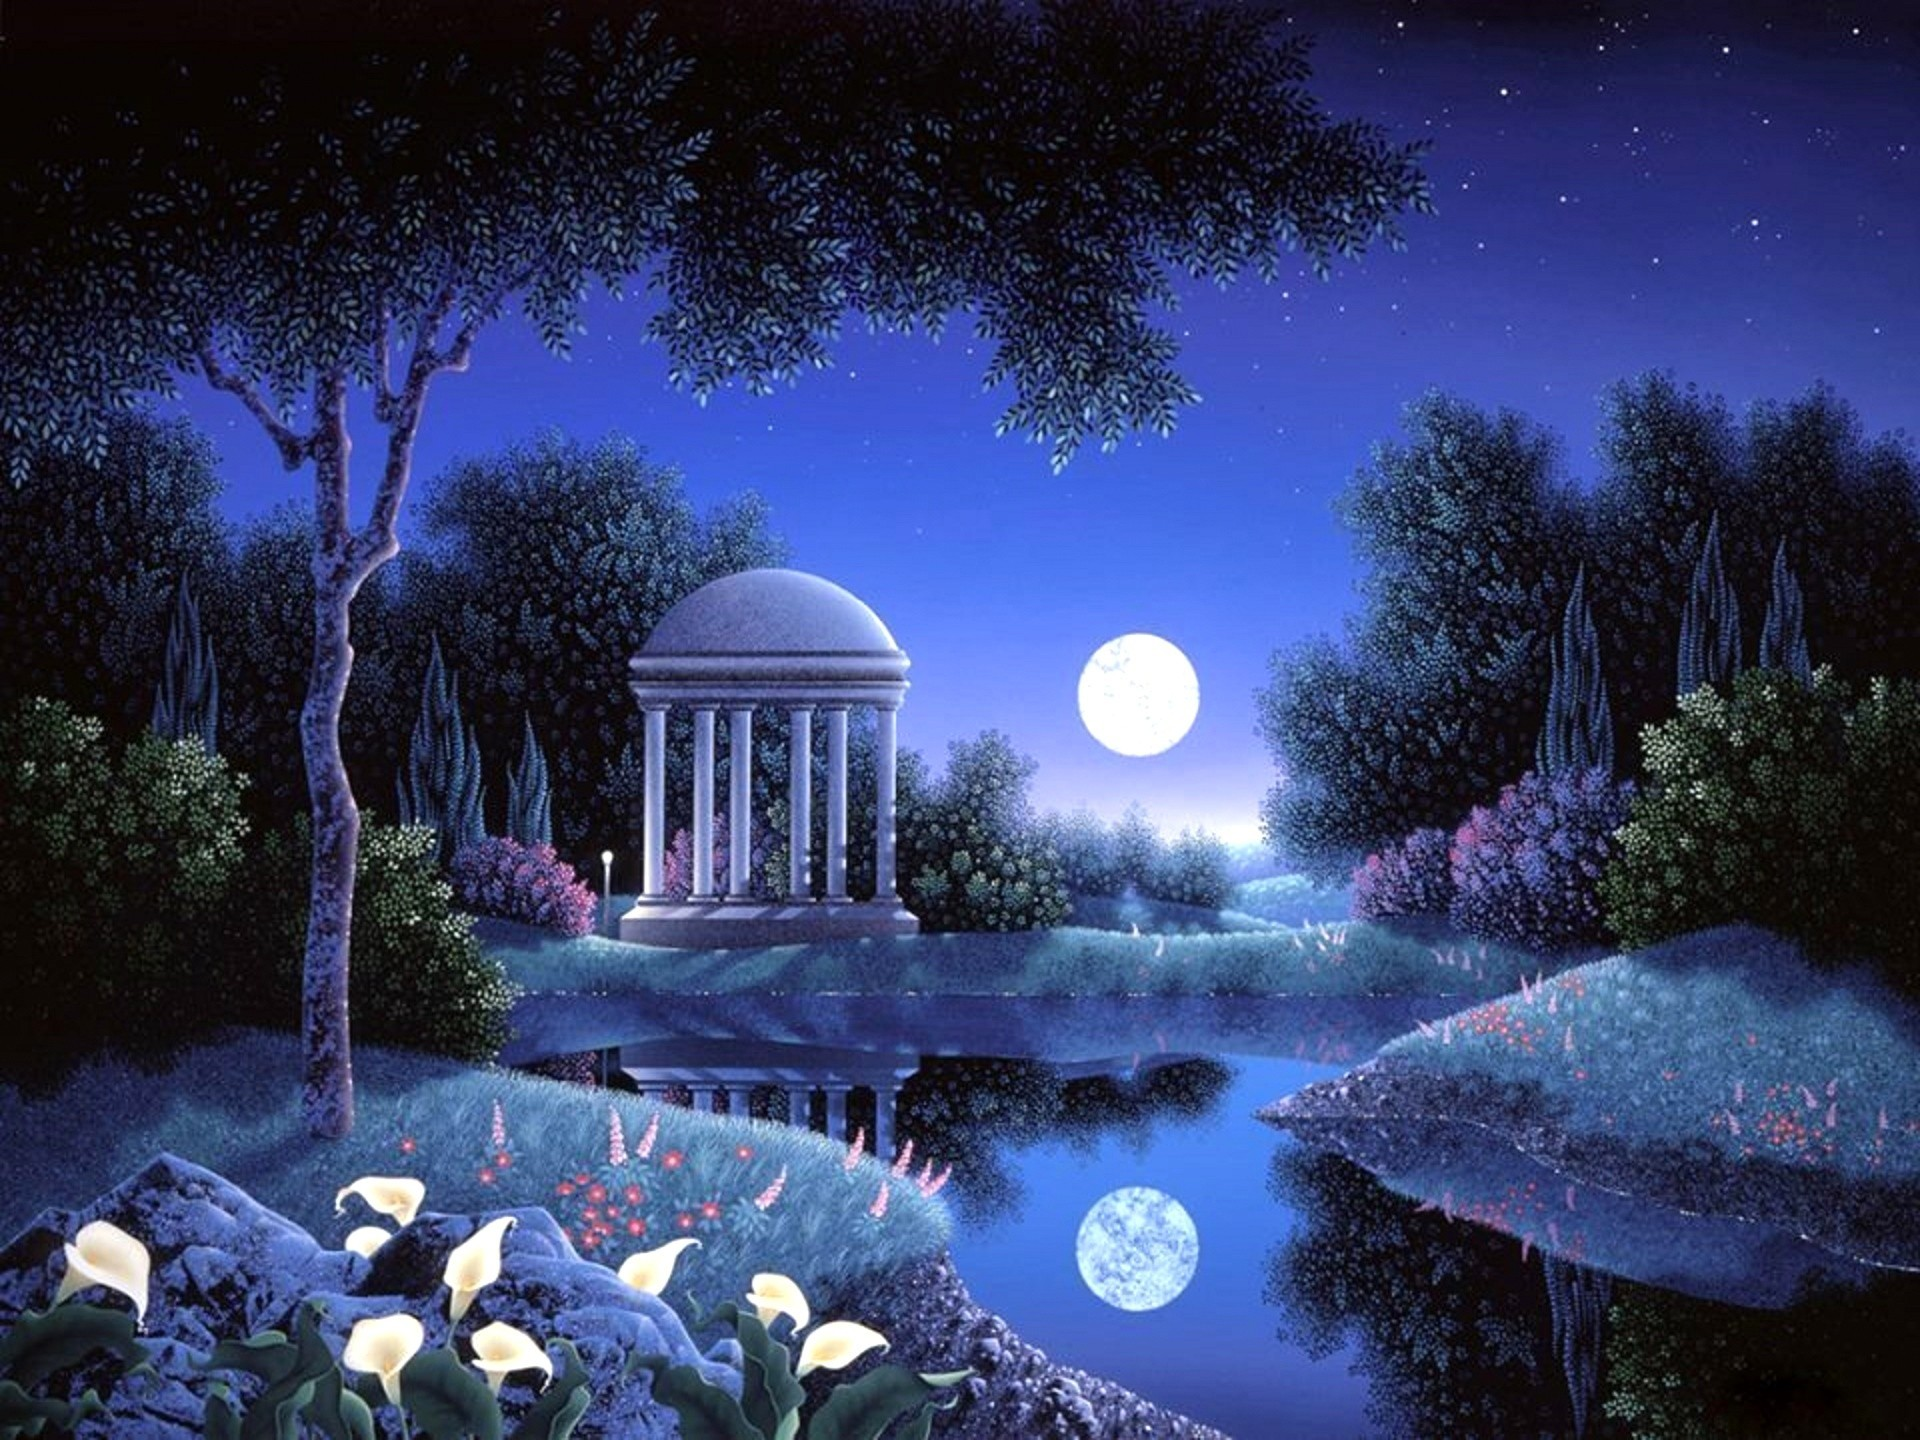 Res: 1920x1440, Nature Cool Reflections Love Dreams Attractions Four Moons Creative Scenery  Summer Paintings Bright Flowers Blue Seasons